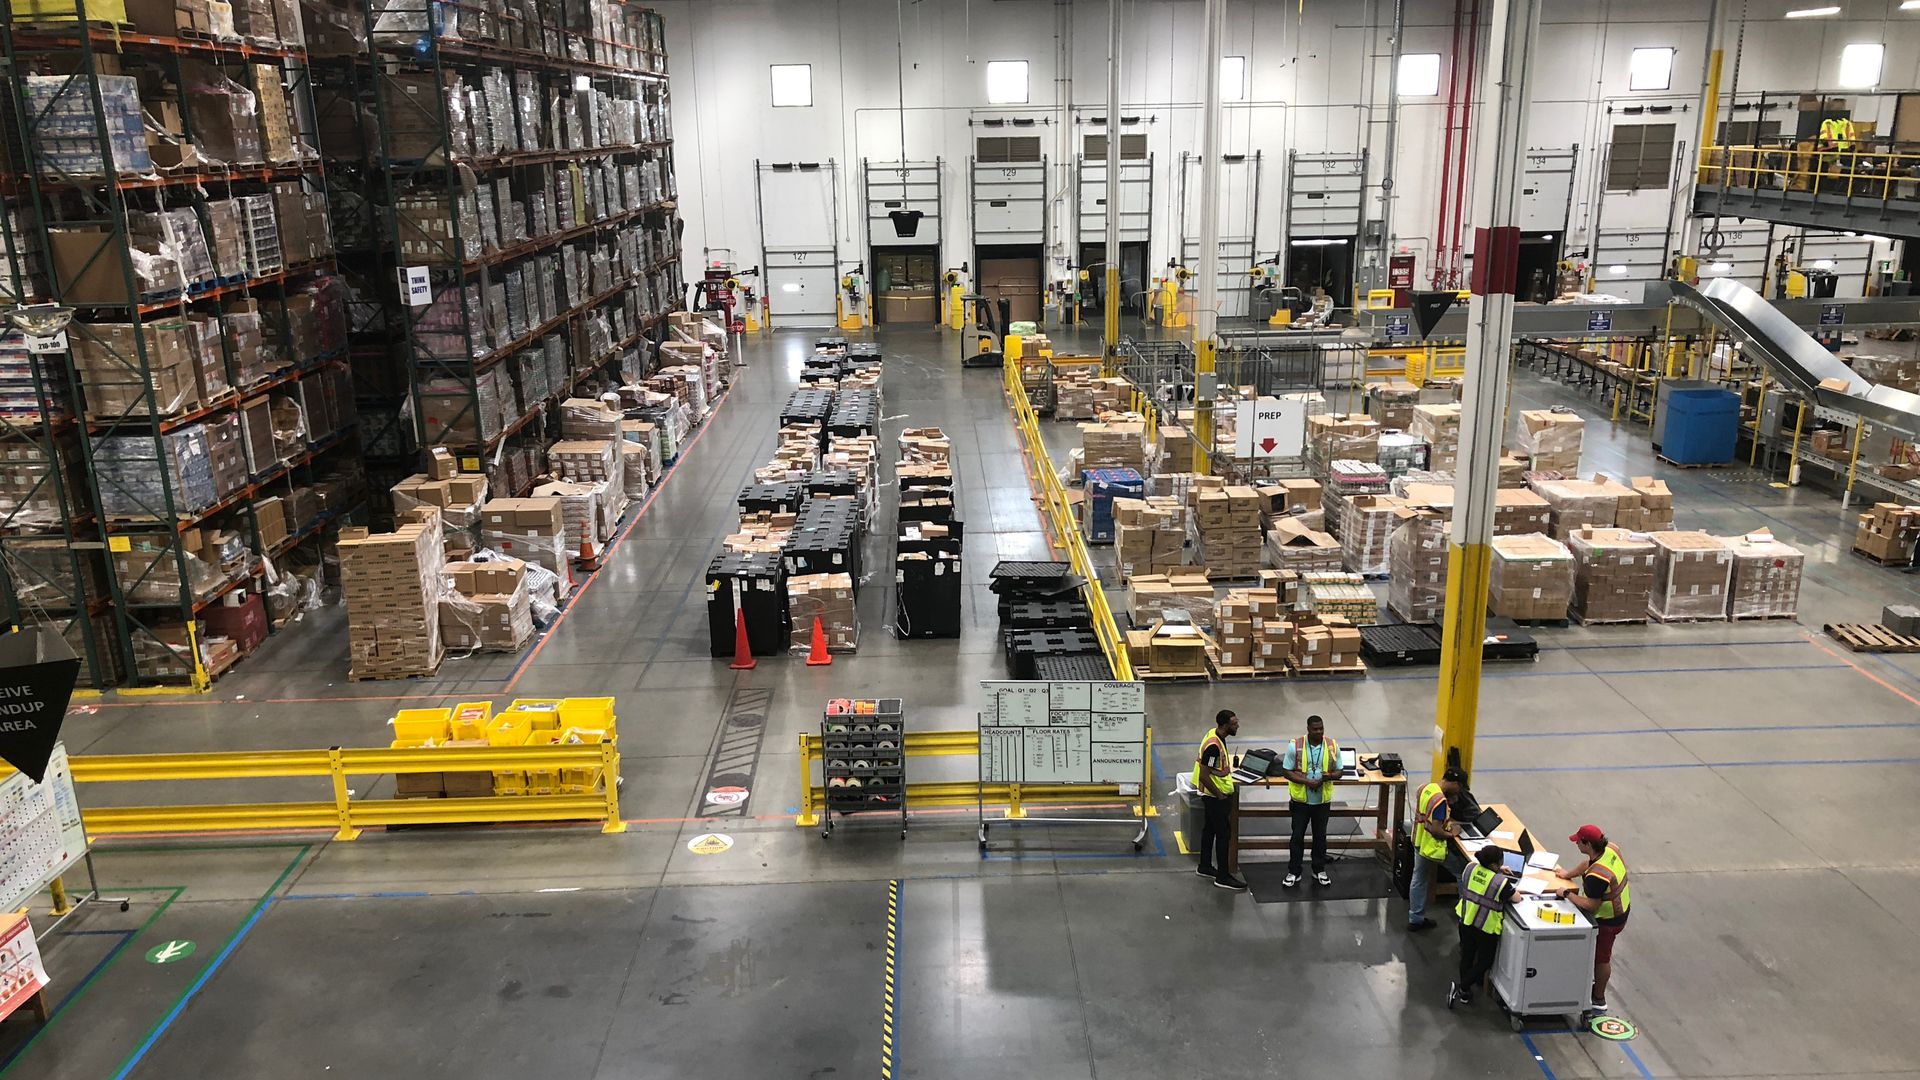 A bird's eye view of a warehouse with packages stacked high